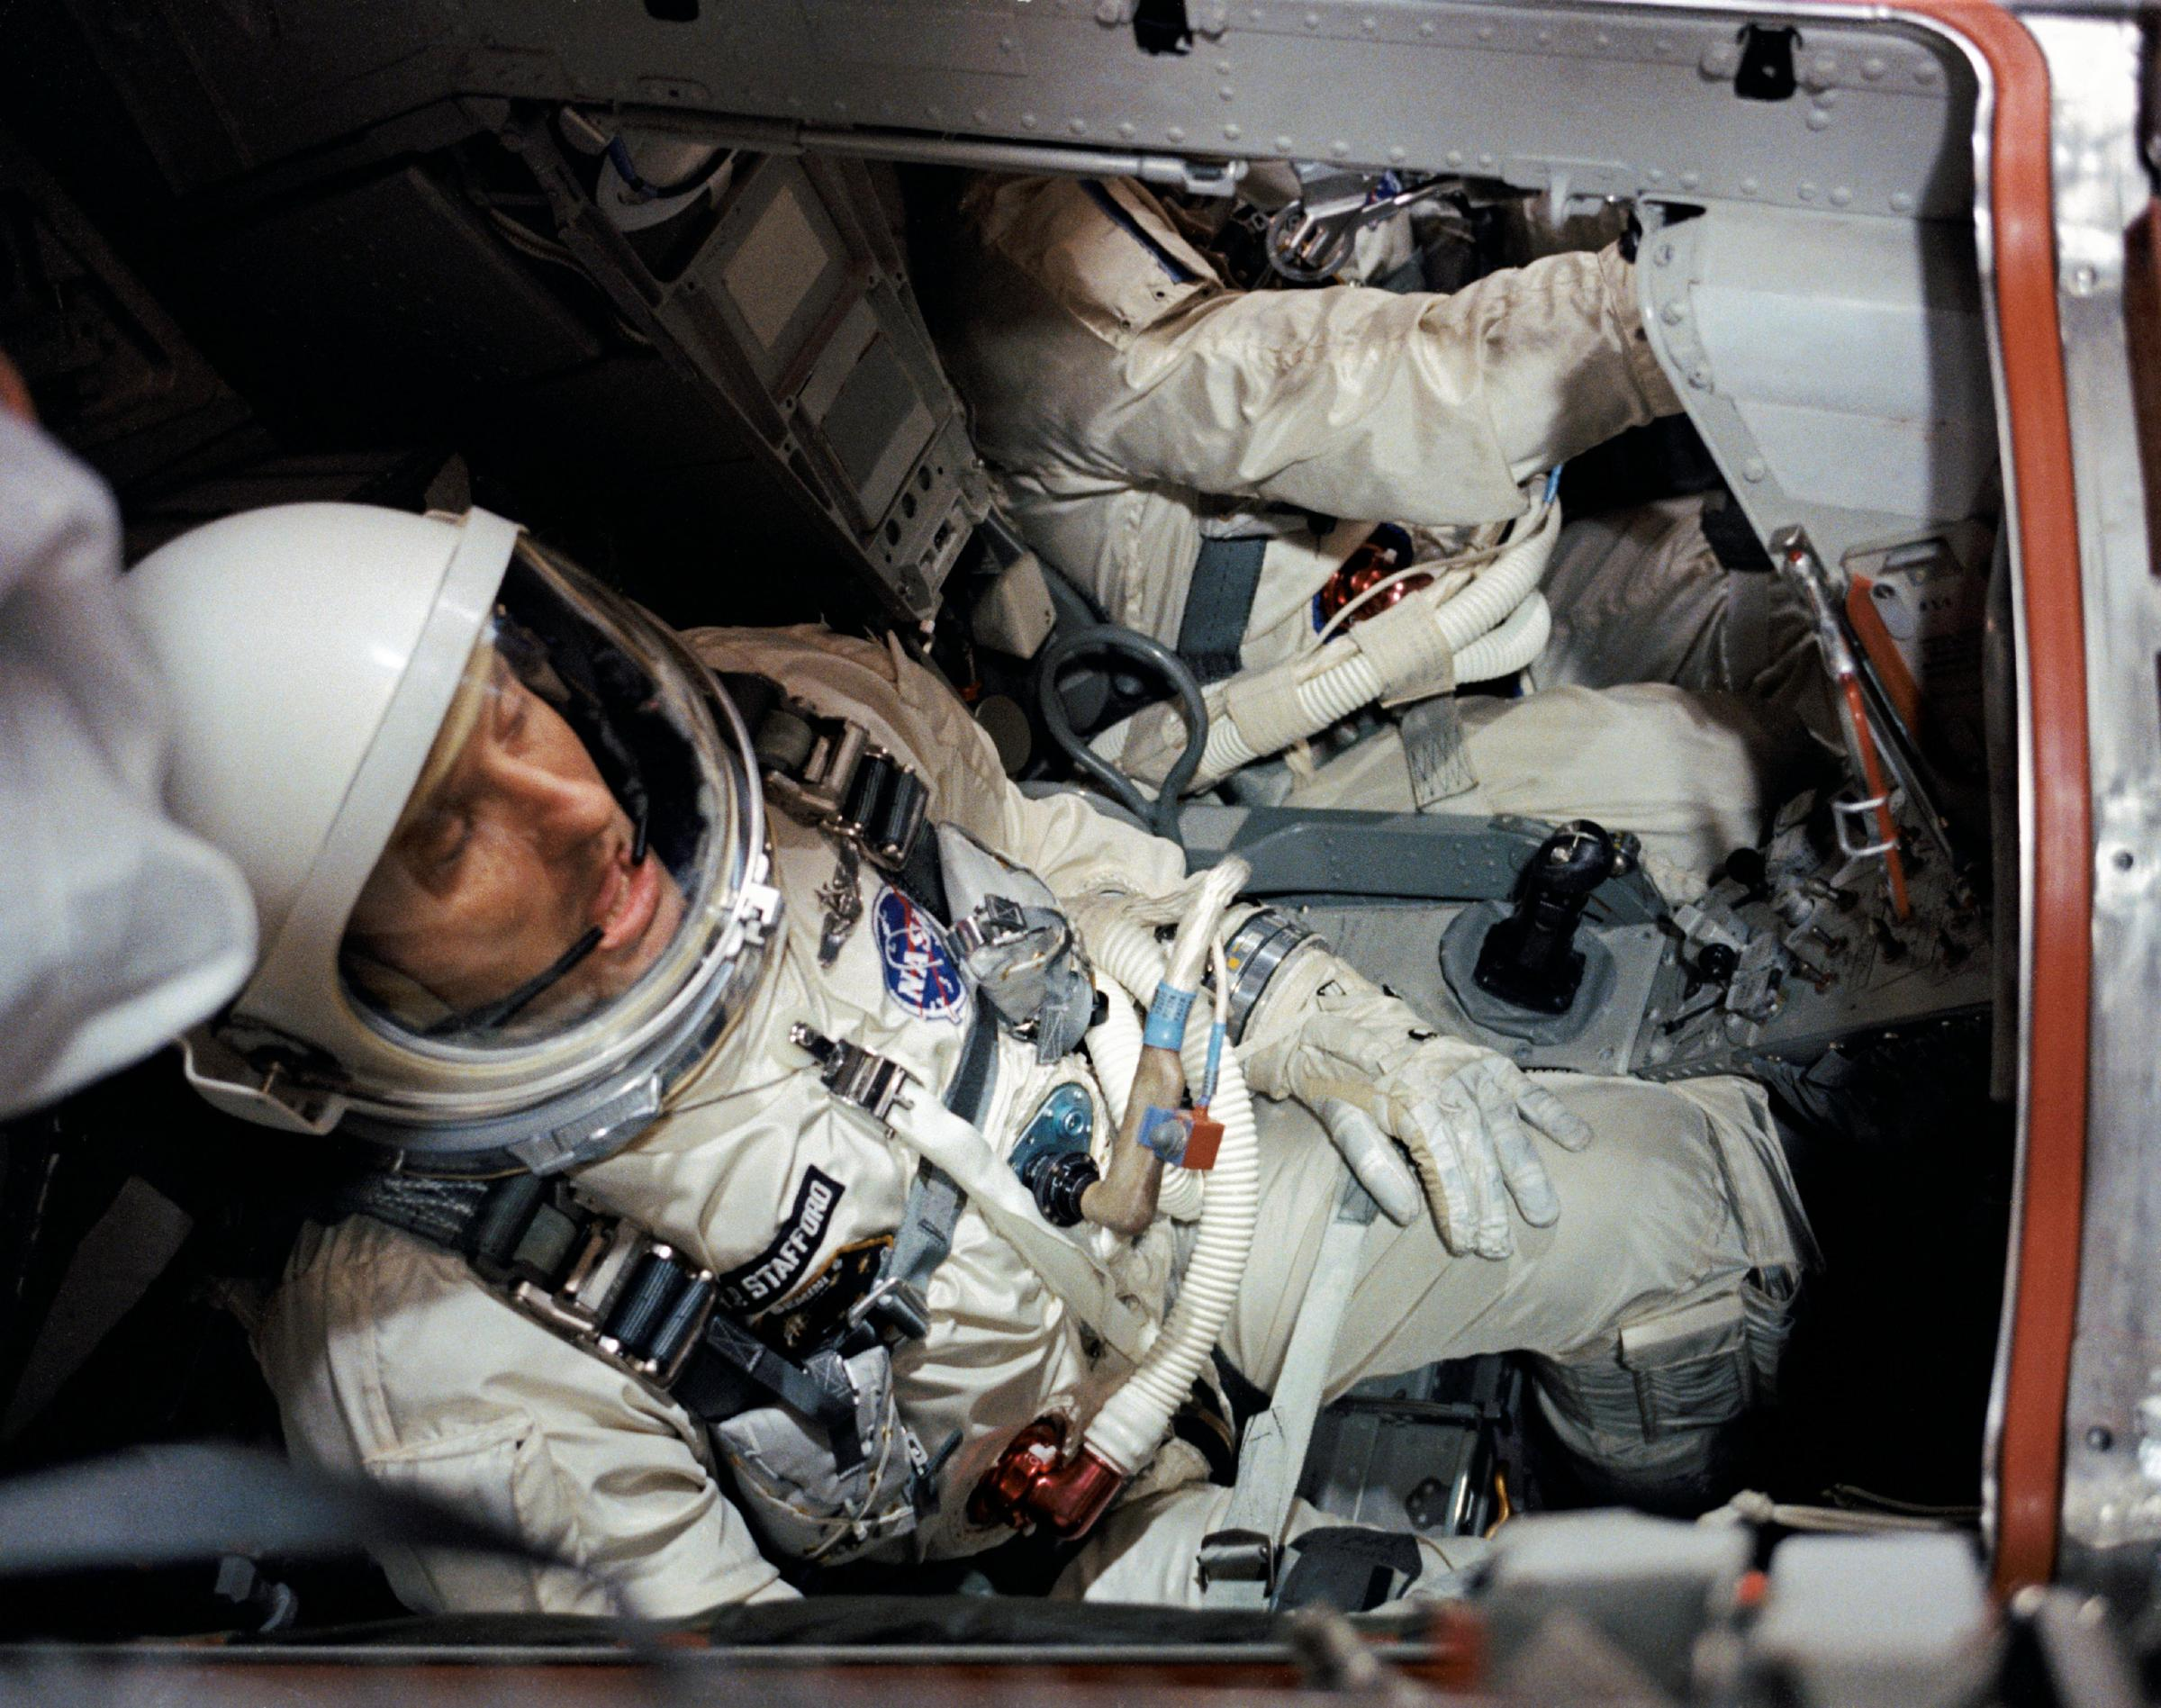 astronaut in space rocket - photo #45